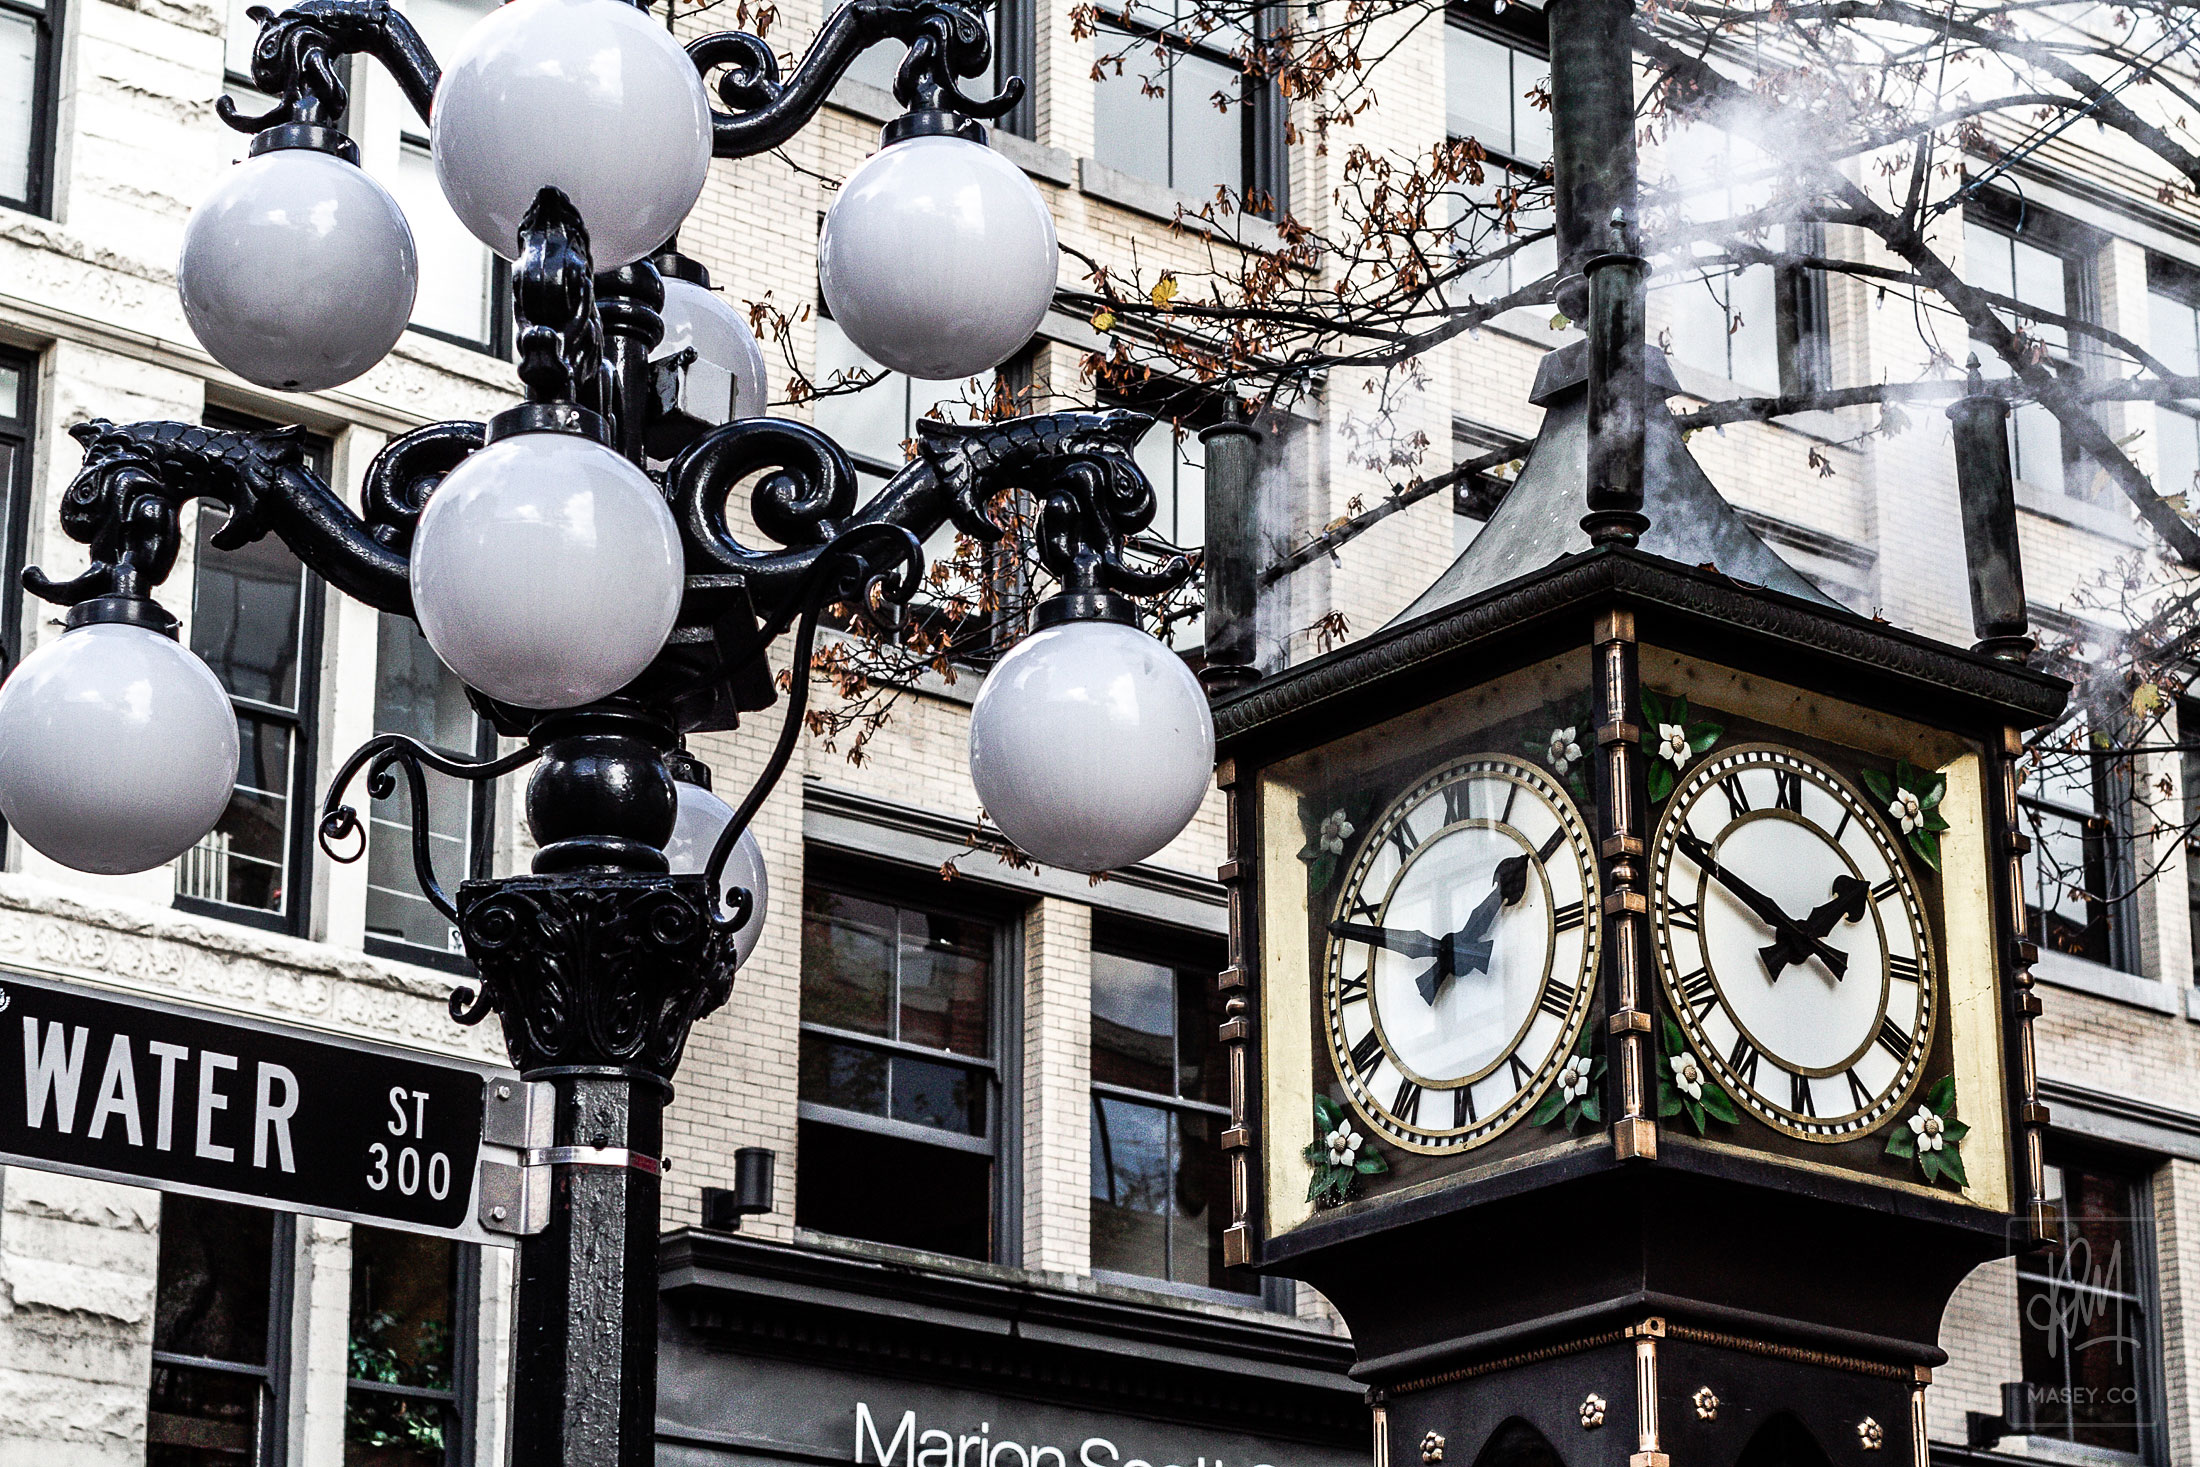 The strangely popular Gastown Steam Clock